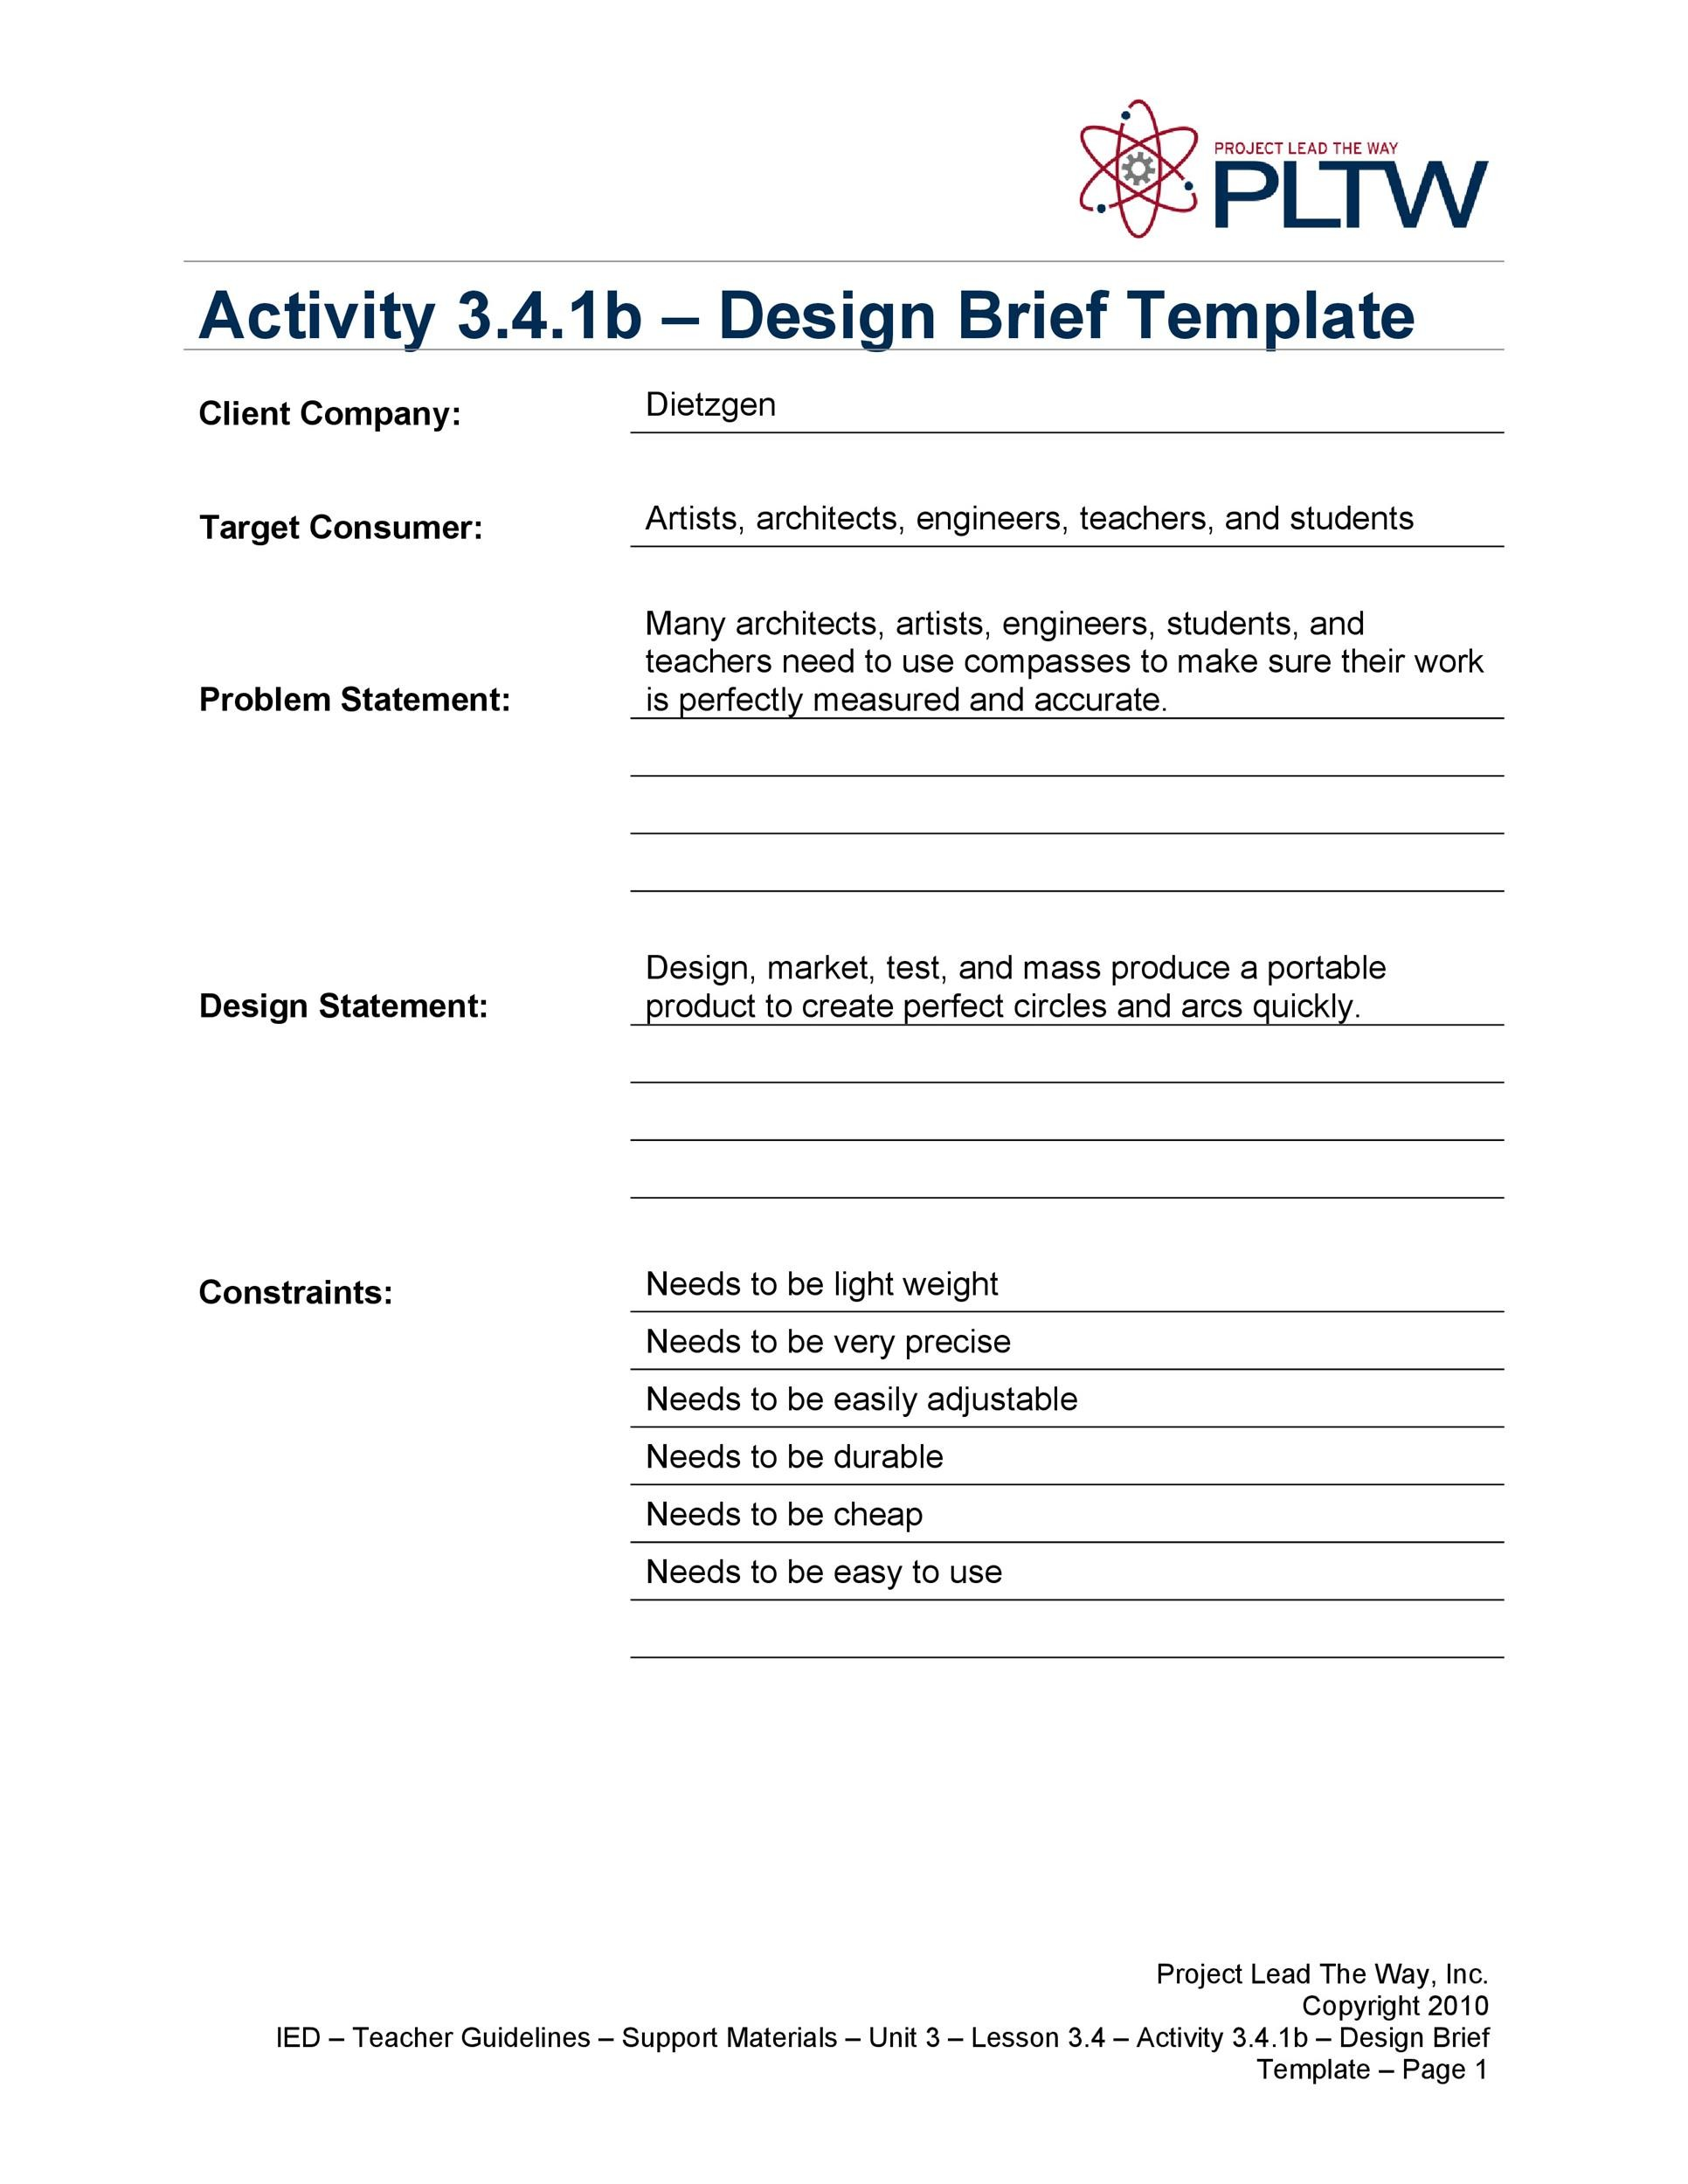 Free design brief template 23